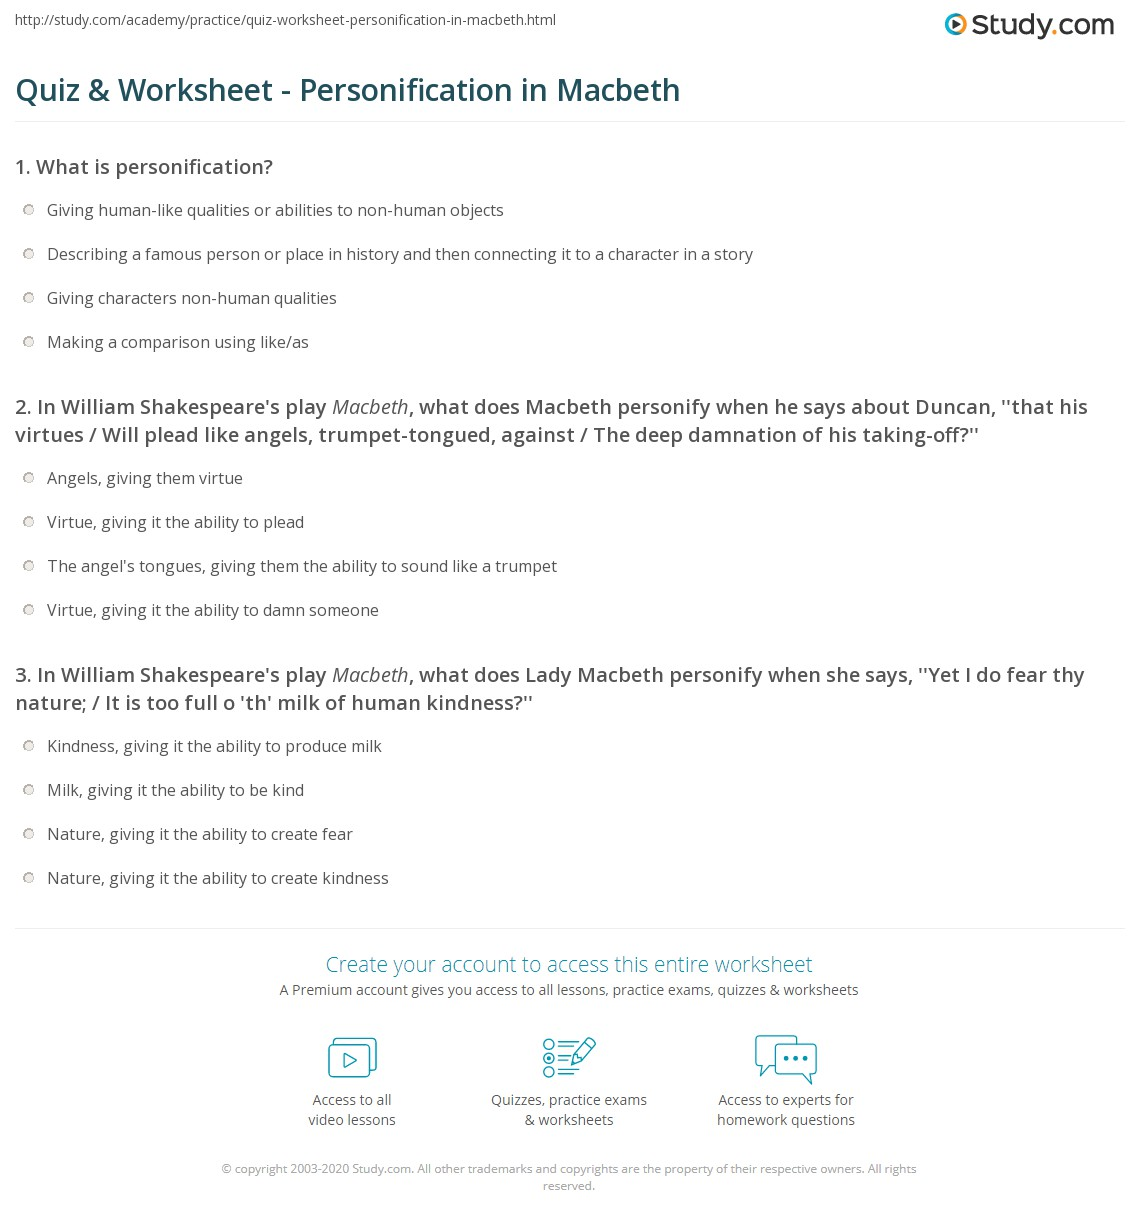 Worksheets Personification Worksheets worksheet personification worksheets fun study quiz in macbeth com print worksheet